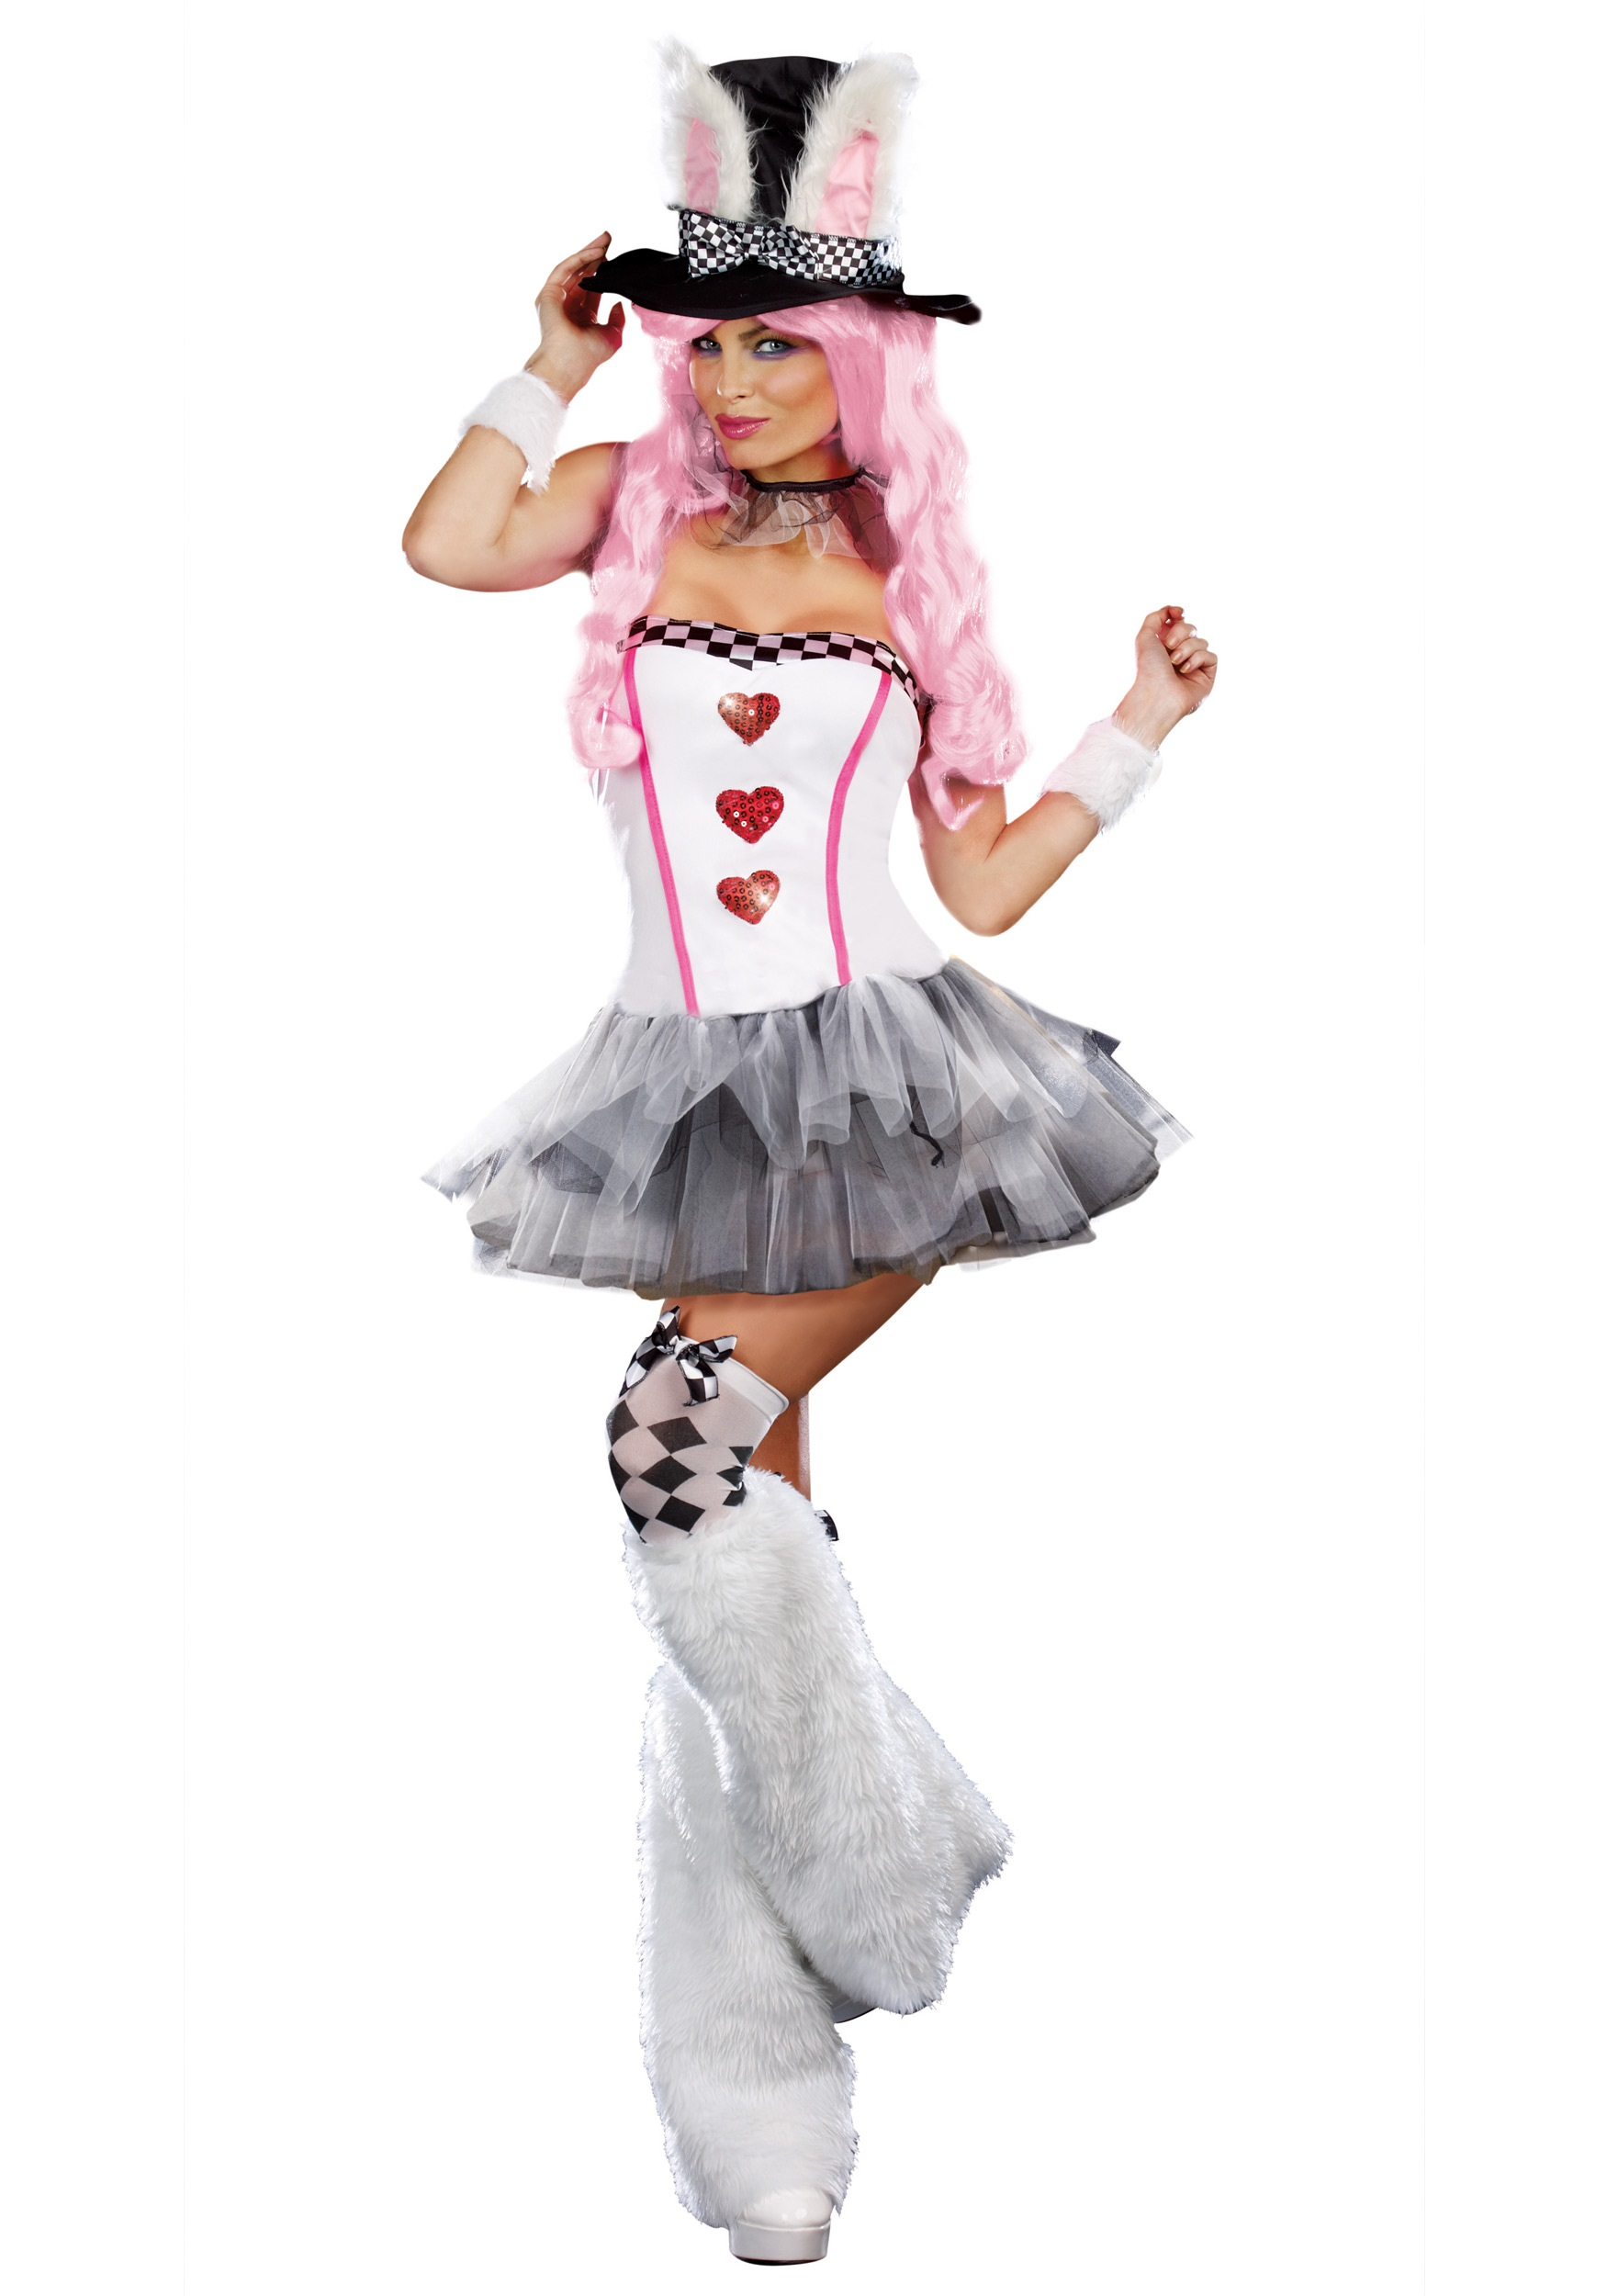 Lost in Wonderland Rabbit Costume